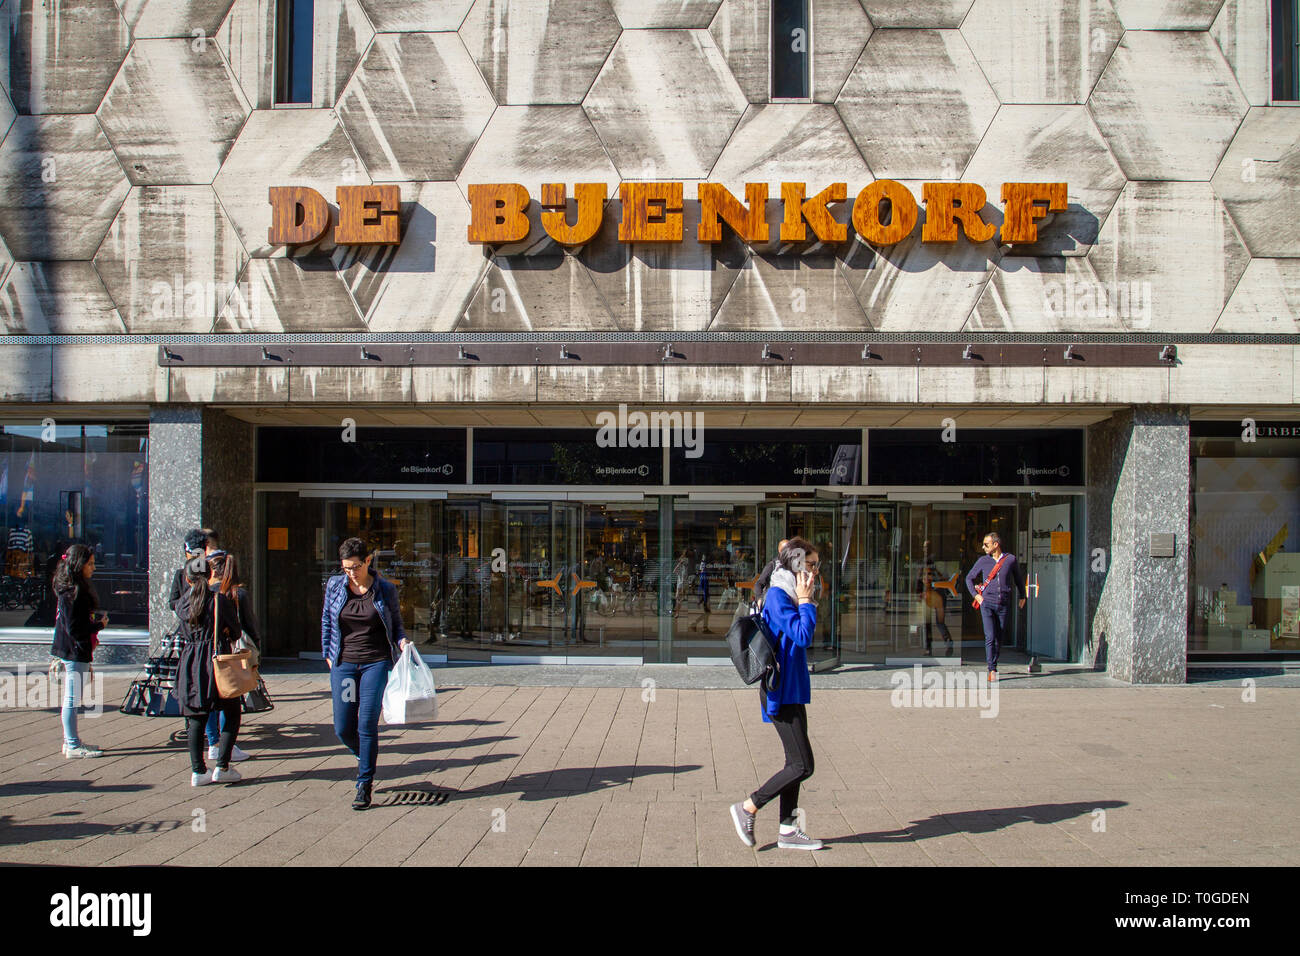 Rotterdam, Netherlands - September 11, 2015: De Bijenkorf department store in Rotterdam designed by Marcel Breuer. De Bijenkorf is a Dutch chain. - Stock Image